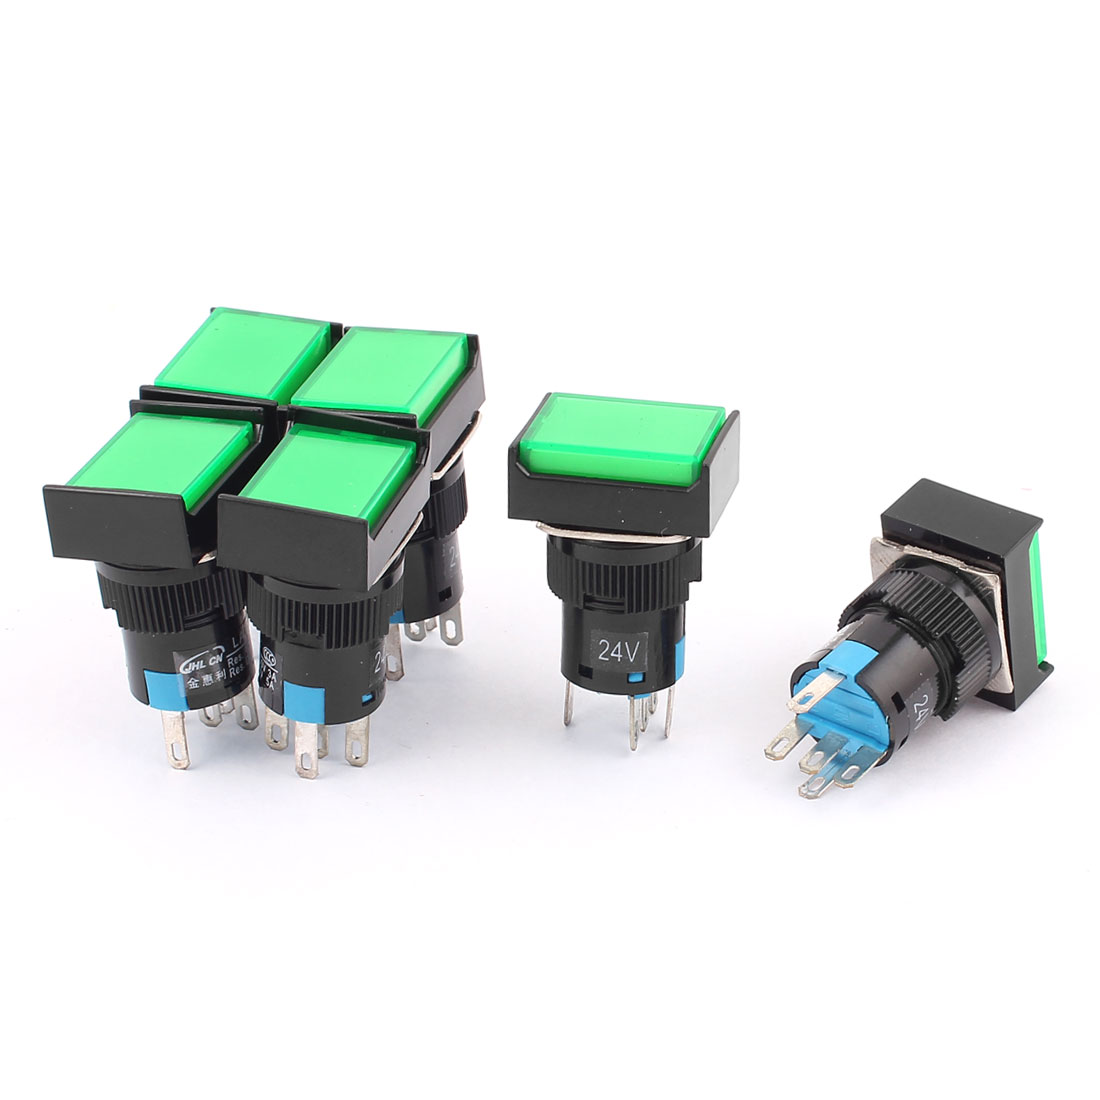 AC 250V 3A DC 30V 5A SPDT 5 Terminals Green Cap Momentary Push Button Switch 6Pcs